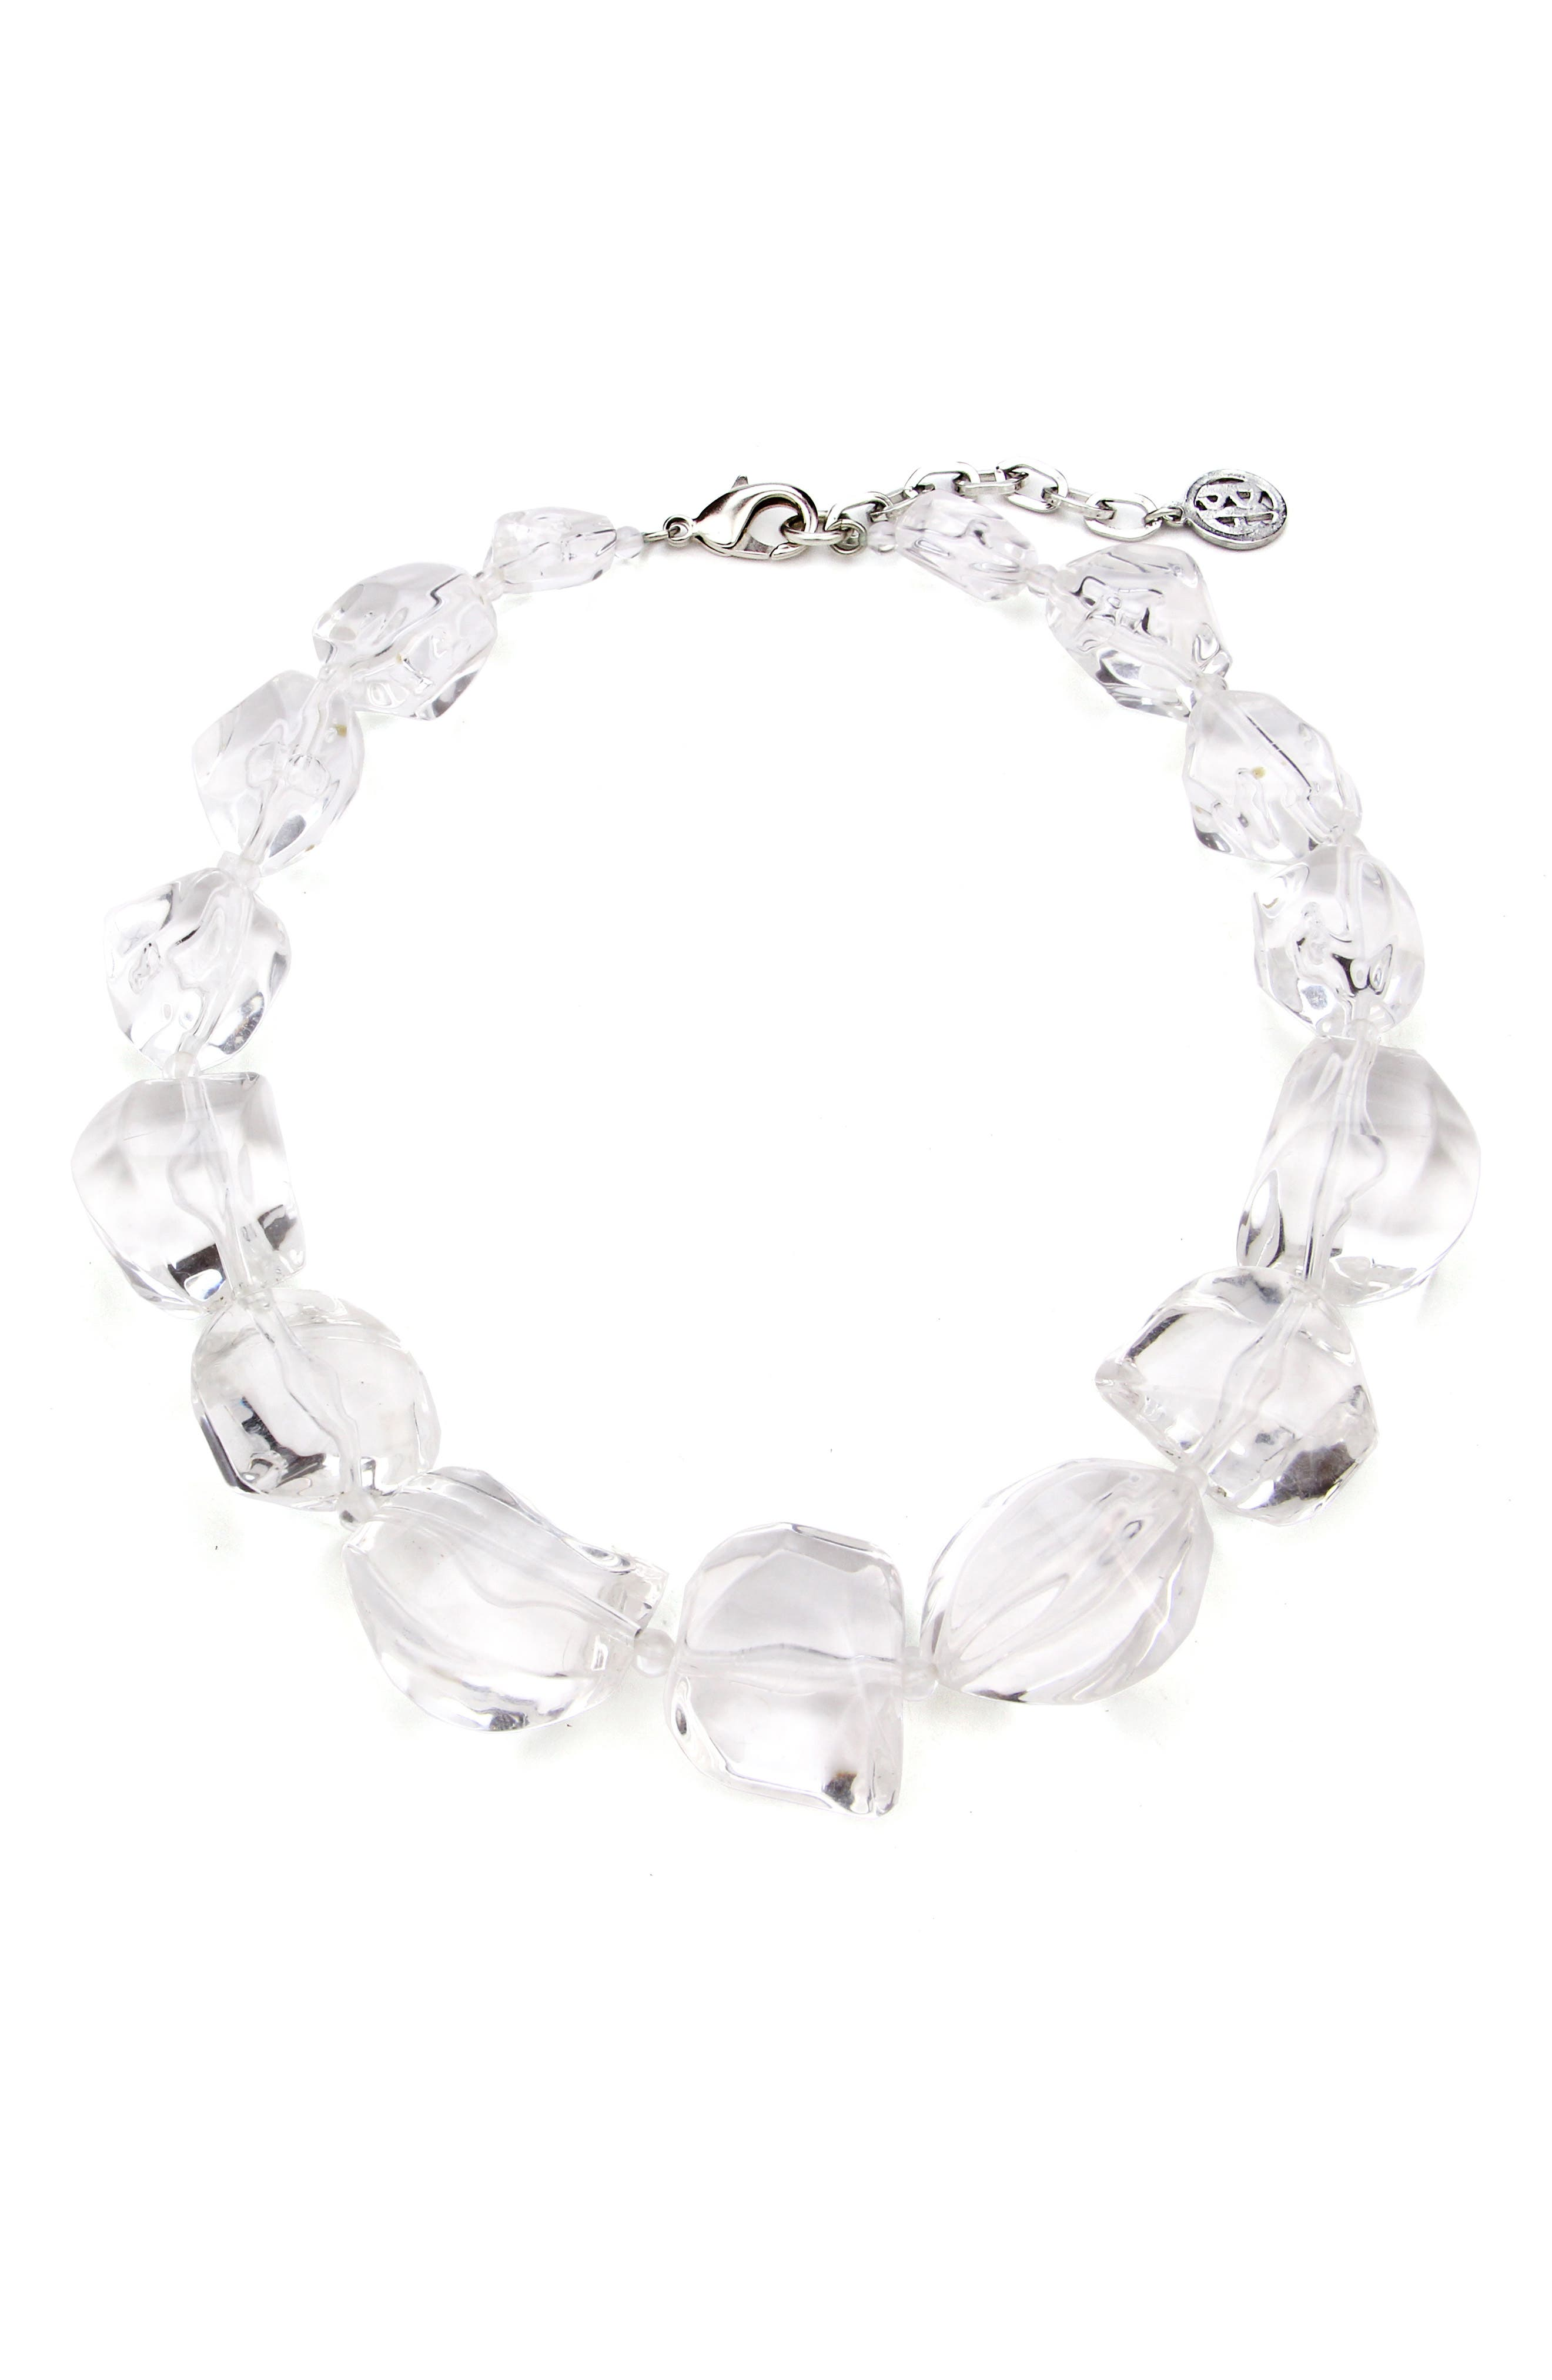 Geometric Clear Lucite<sup>®</sup> Necklace,                         Main,                         color, CLEAR/ SILVER